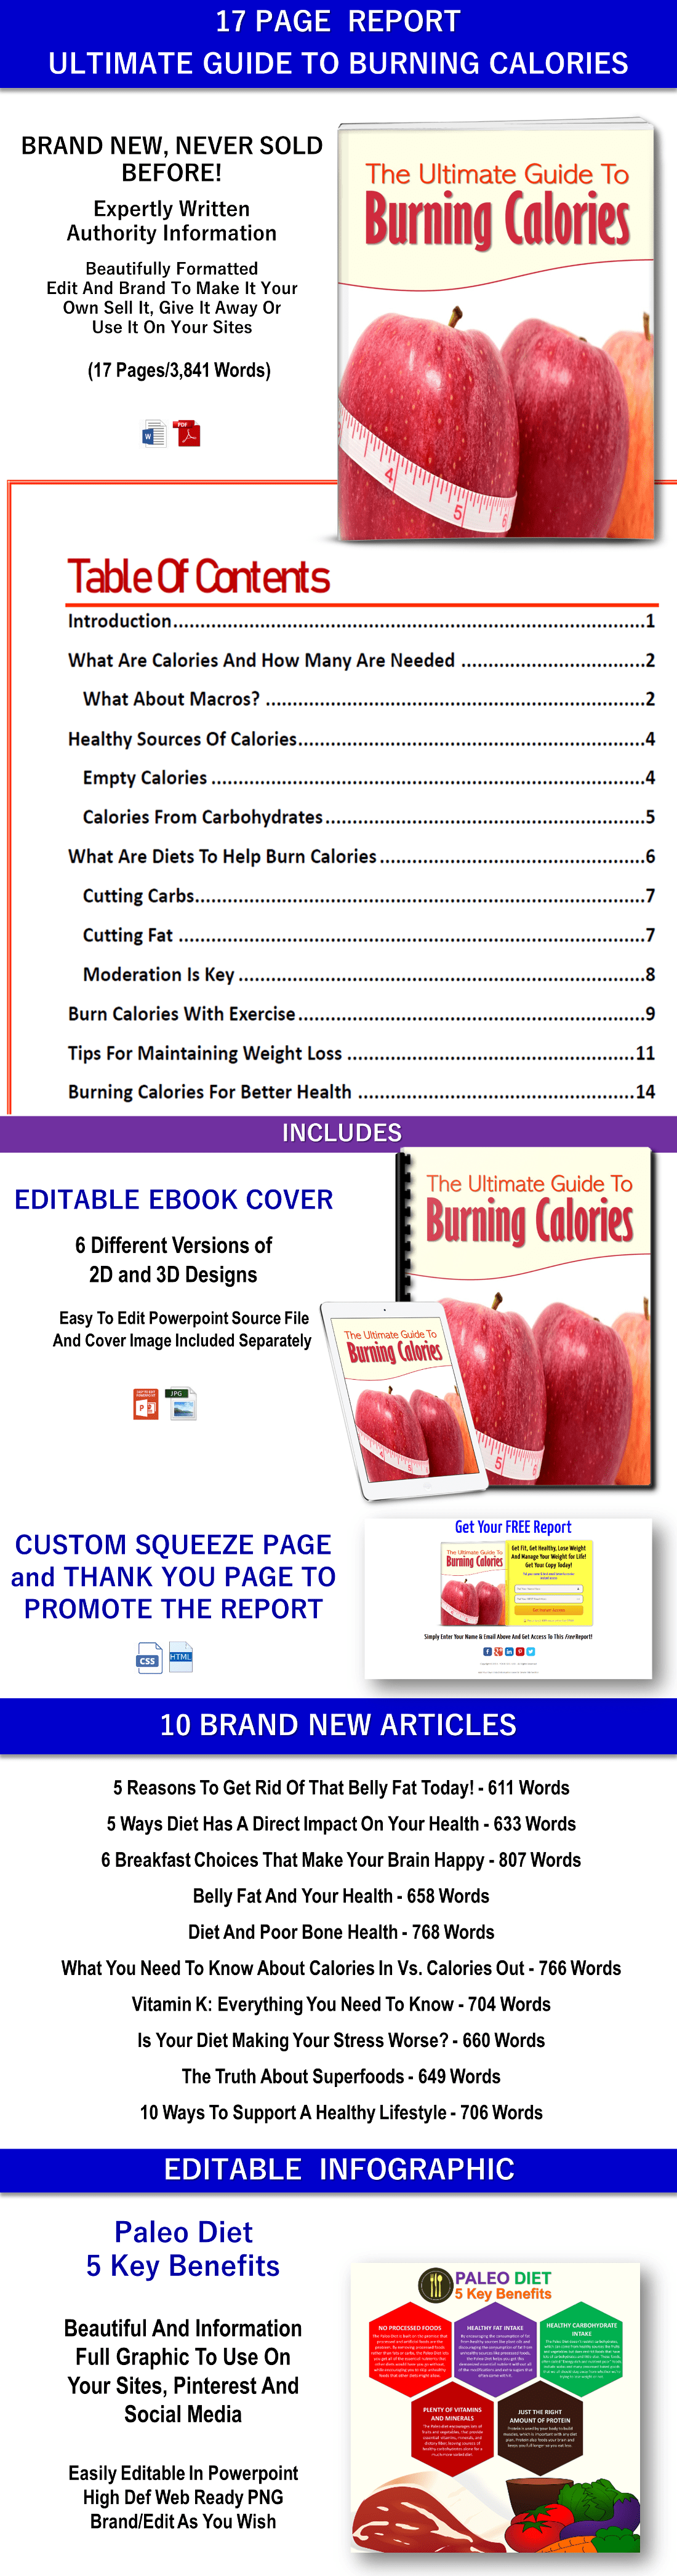 Burning Calories PLR